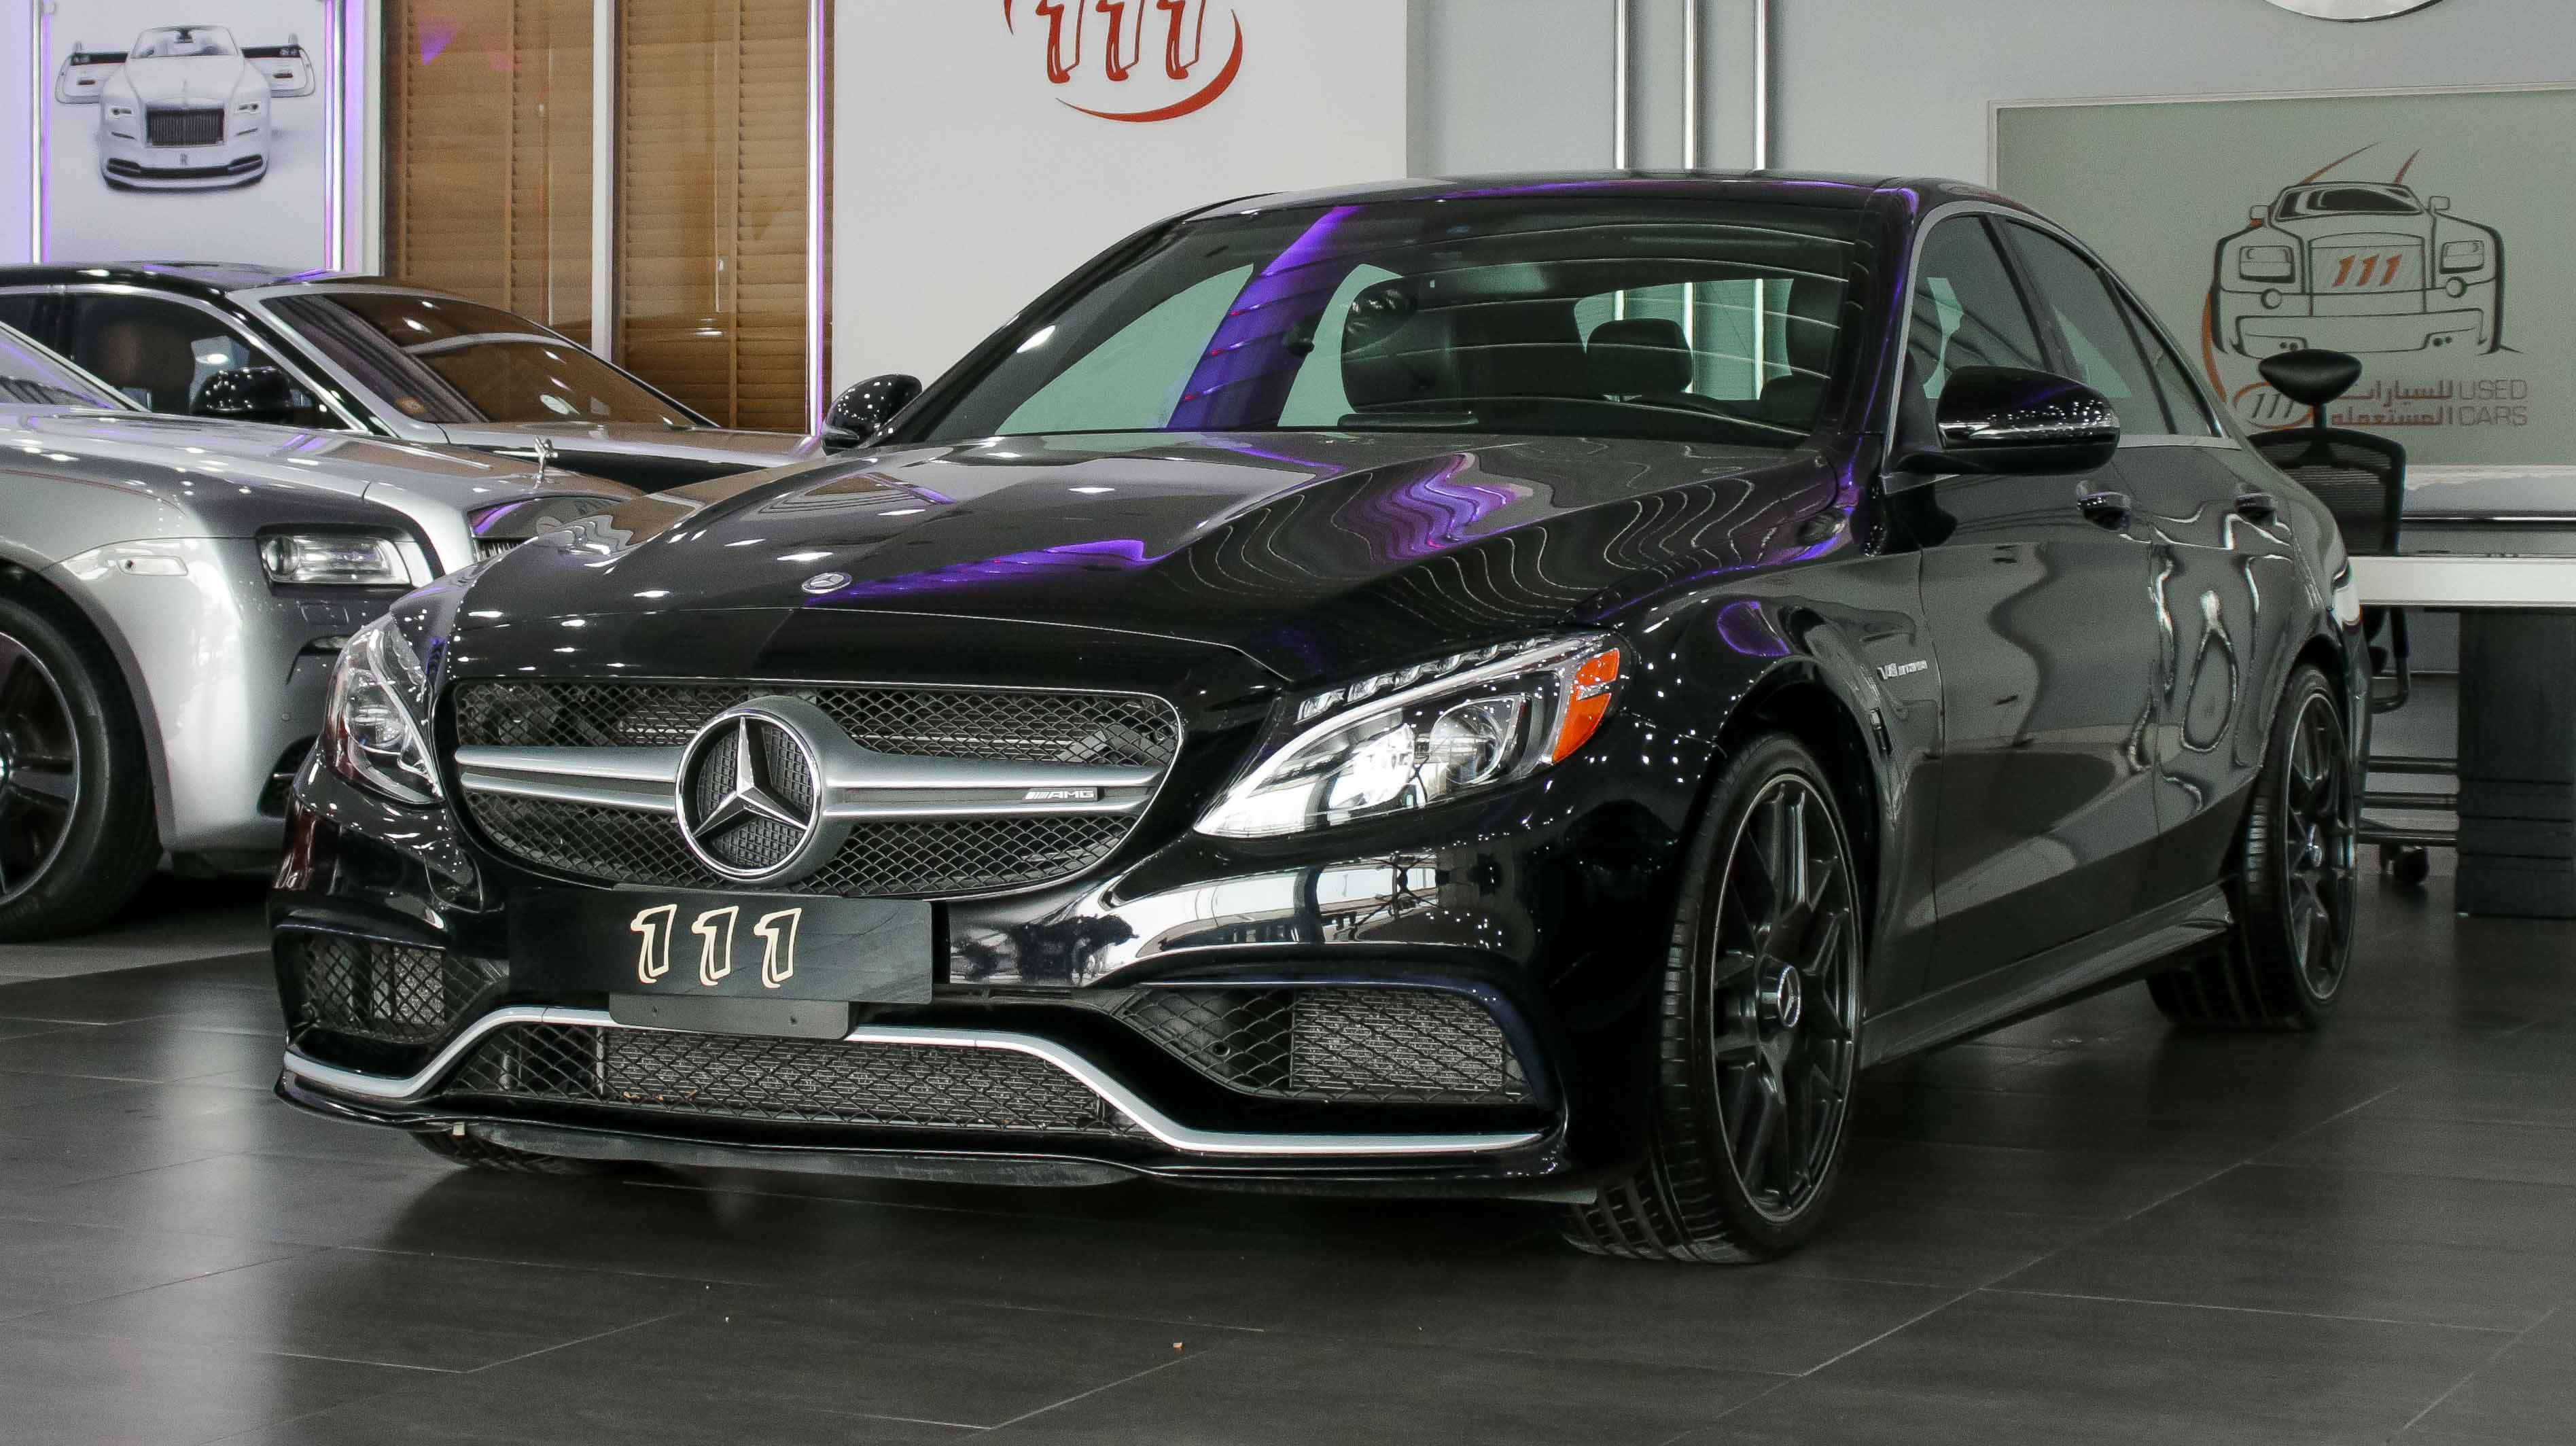 Model Mercedes Benz C63 Amg S Year 2017 Km 32 000 Price